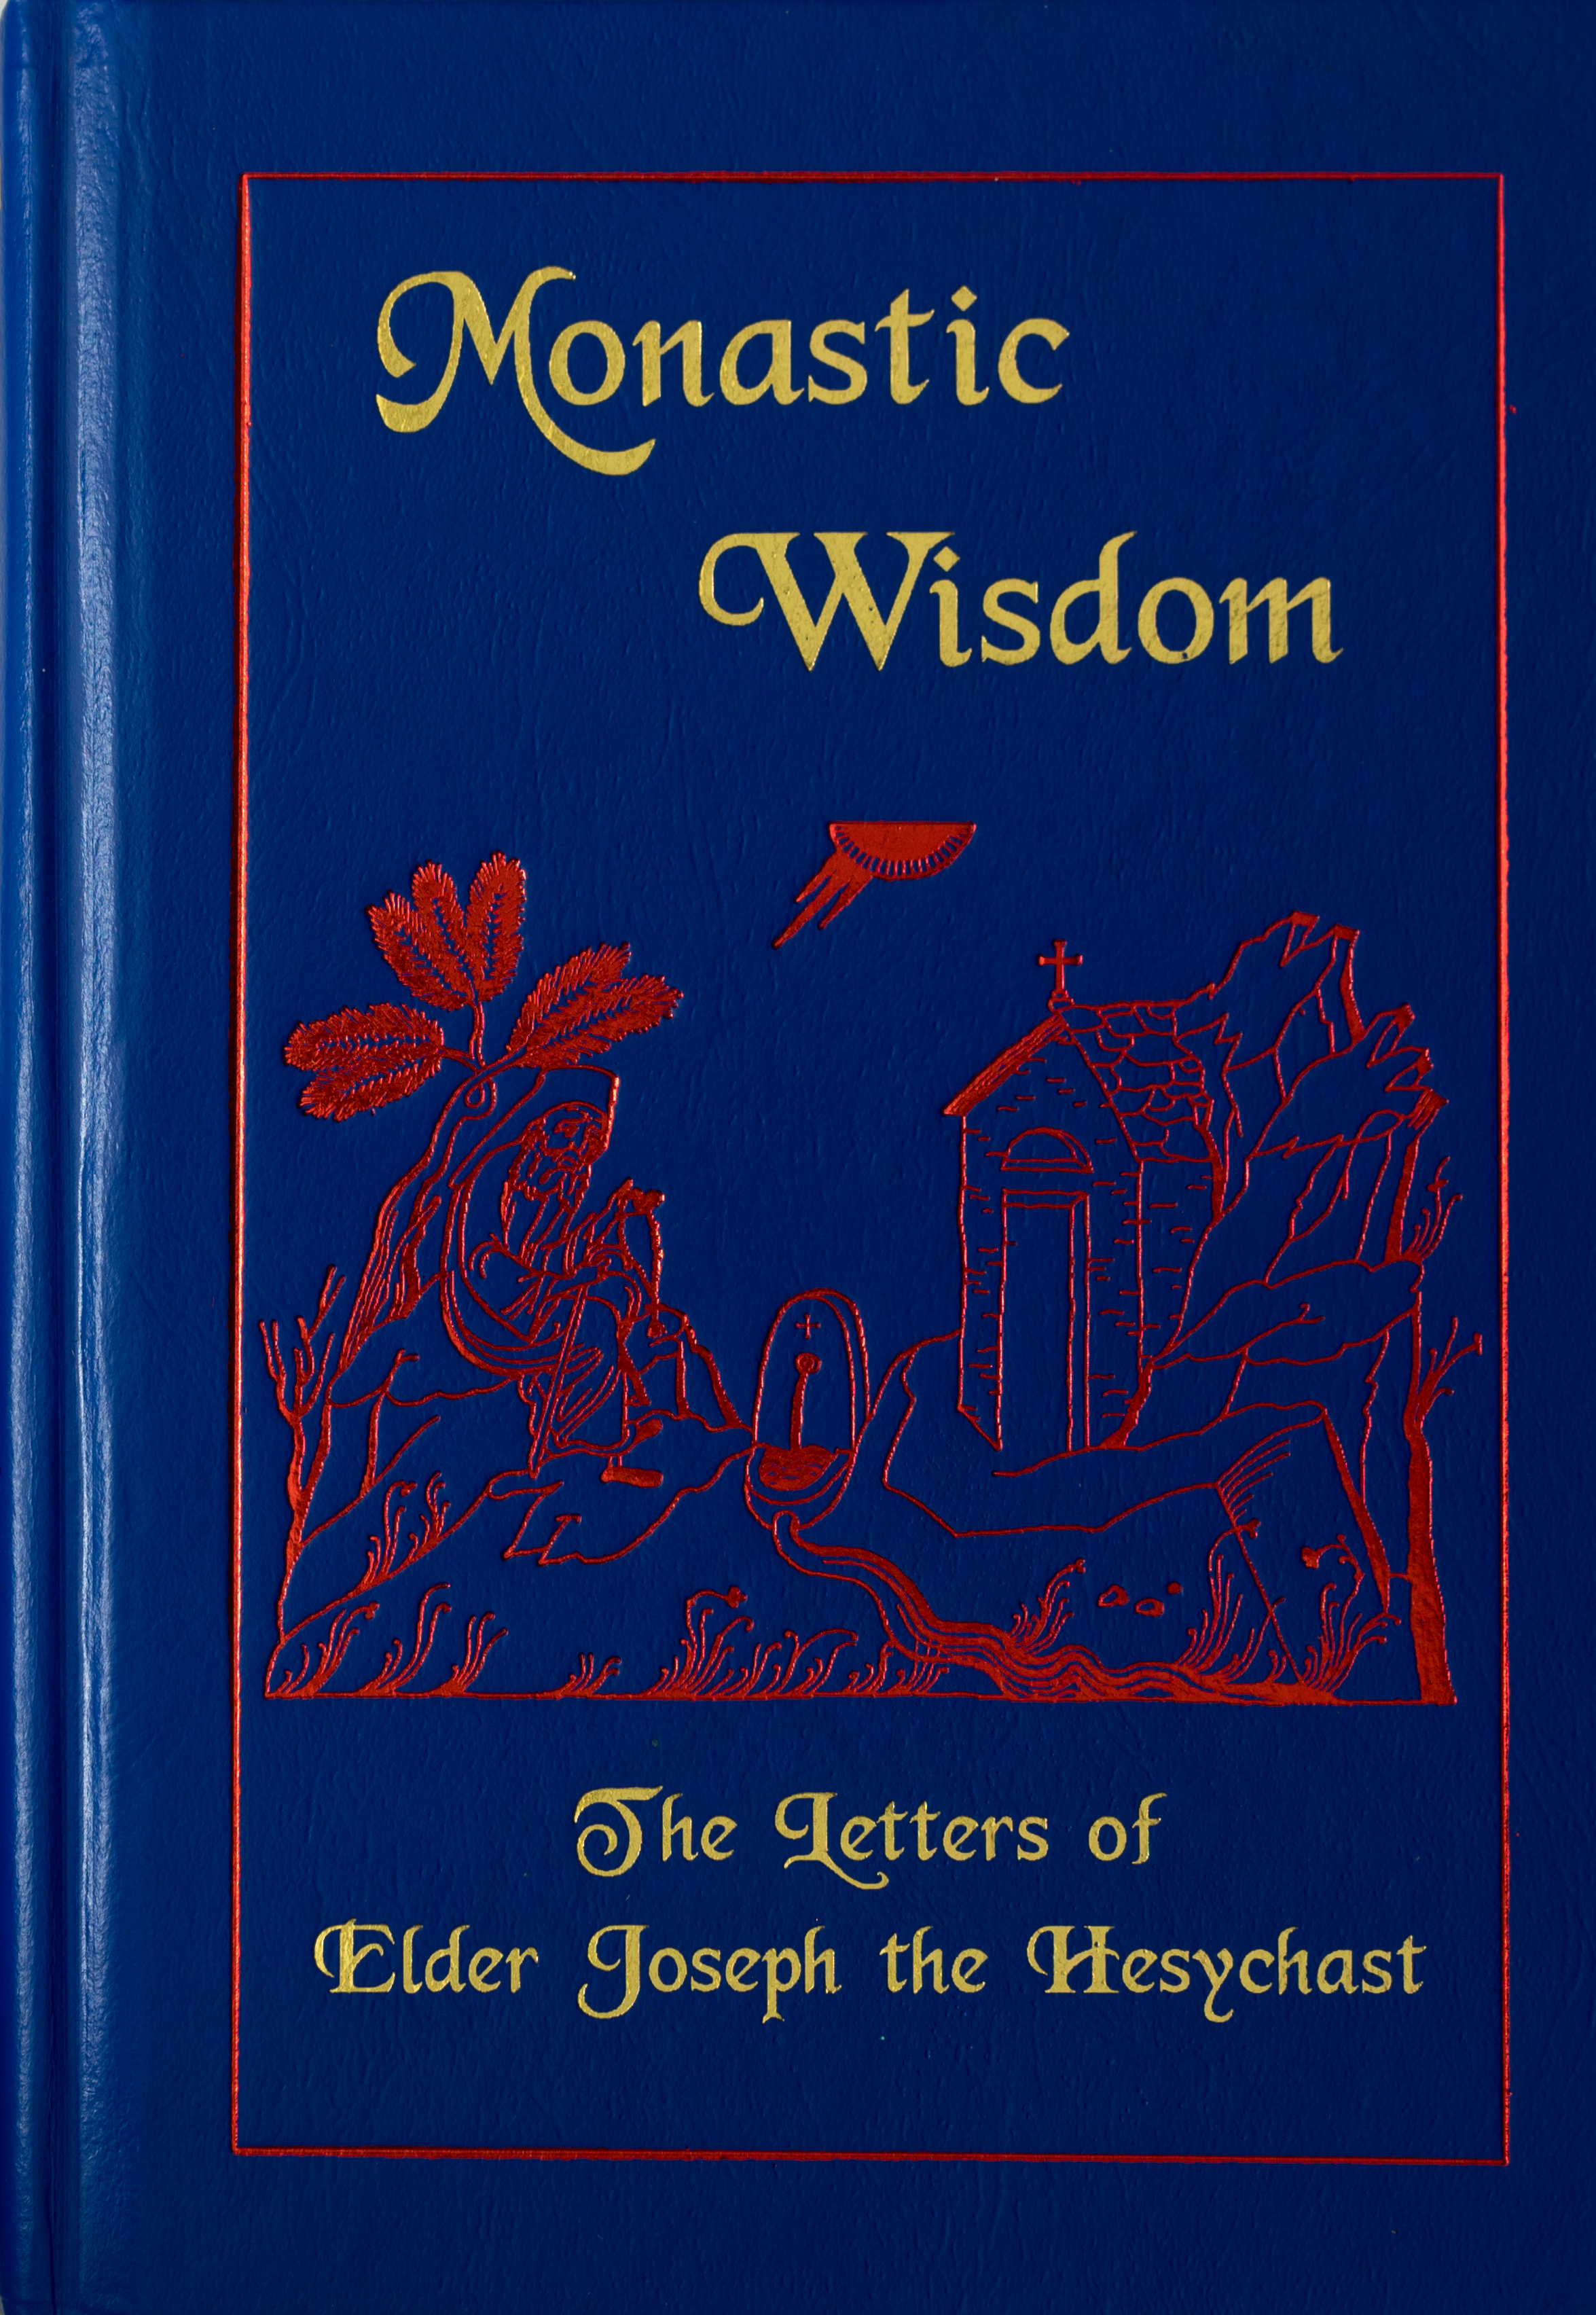 Monastic Wisdom: The Letters of Elder Joseph the Hesychast (hardcover)  OUT OF PRINT